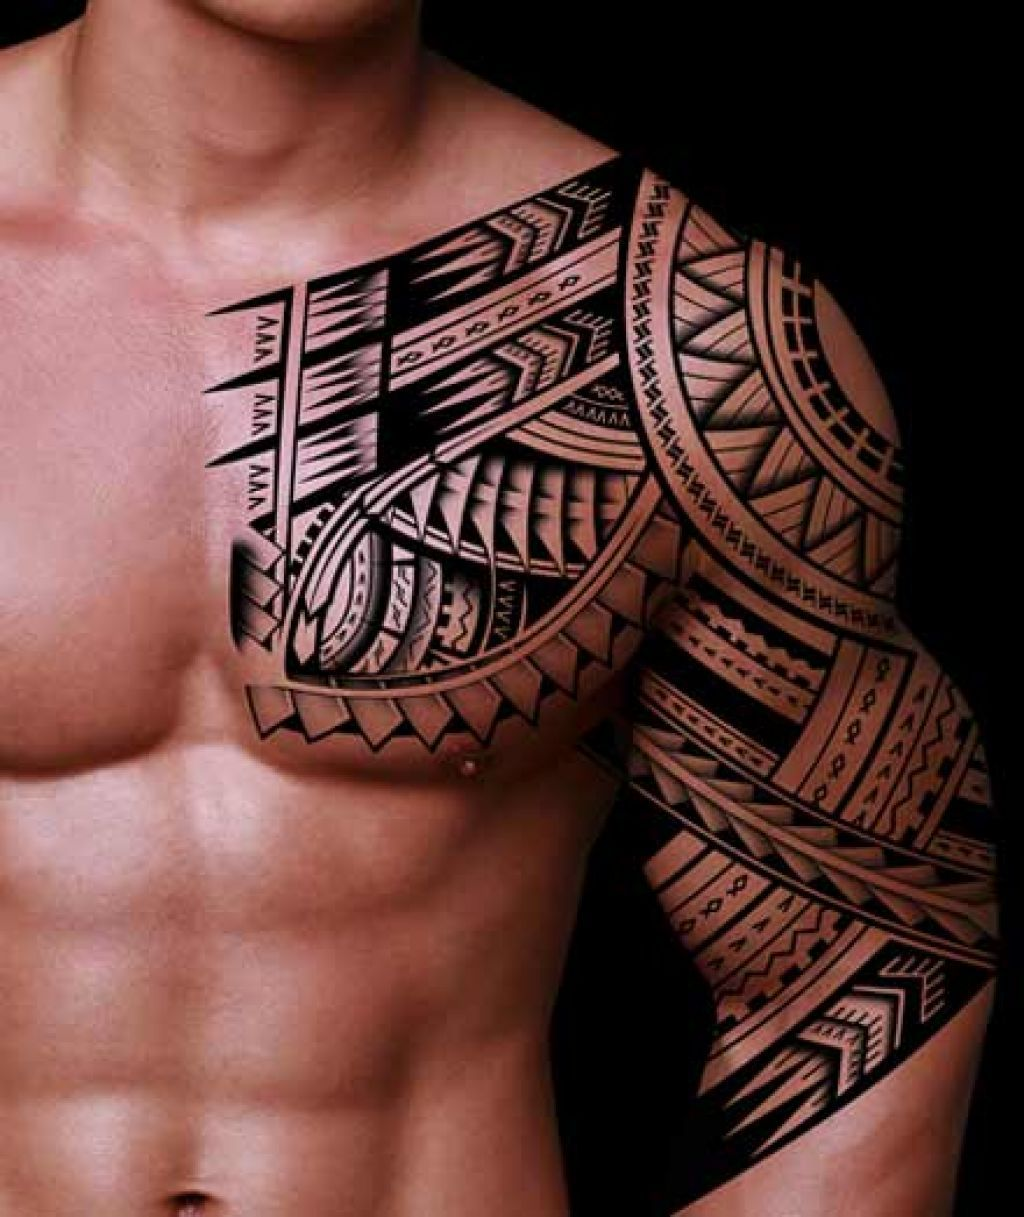 30 of the best virgo tattoo designs tattoo easily - Half Sleeve Tribal Tattoo Designs For Men